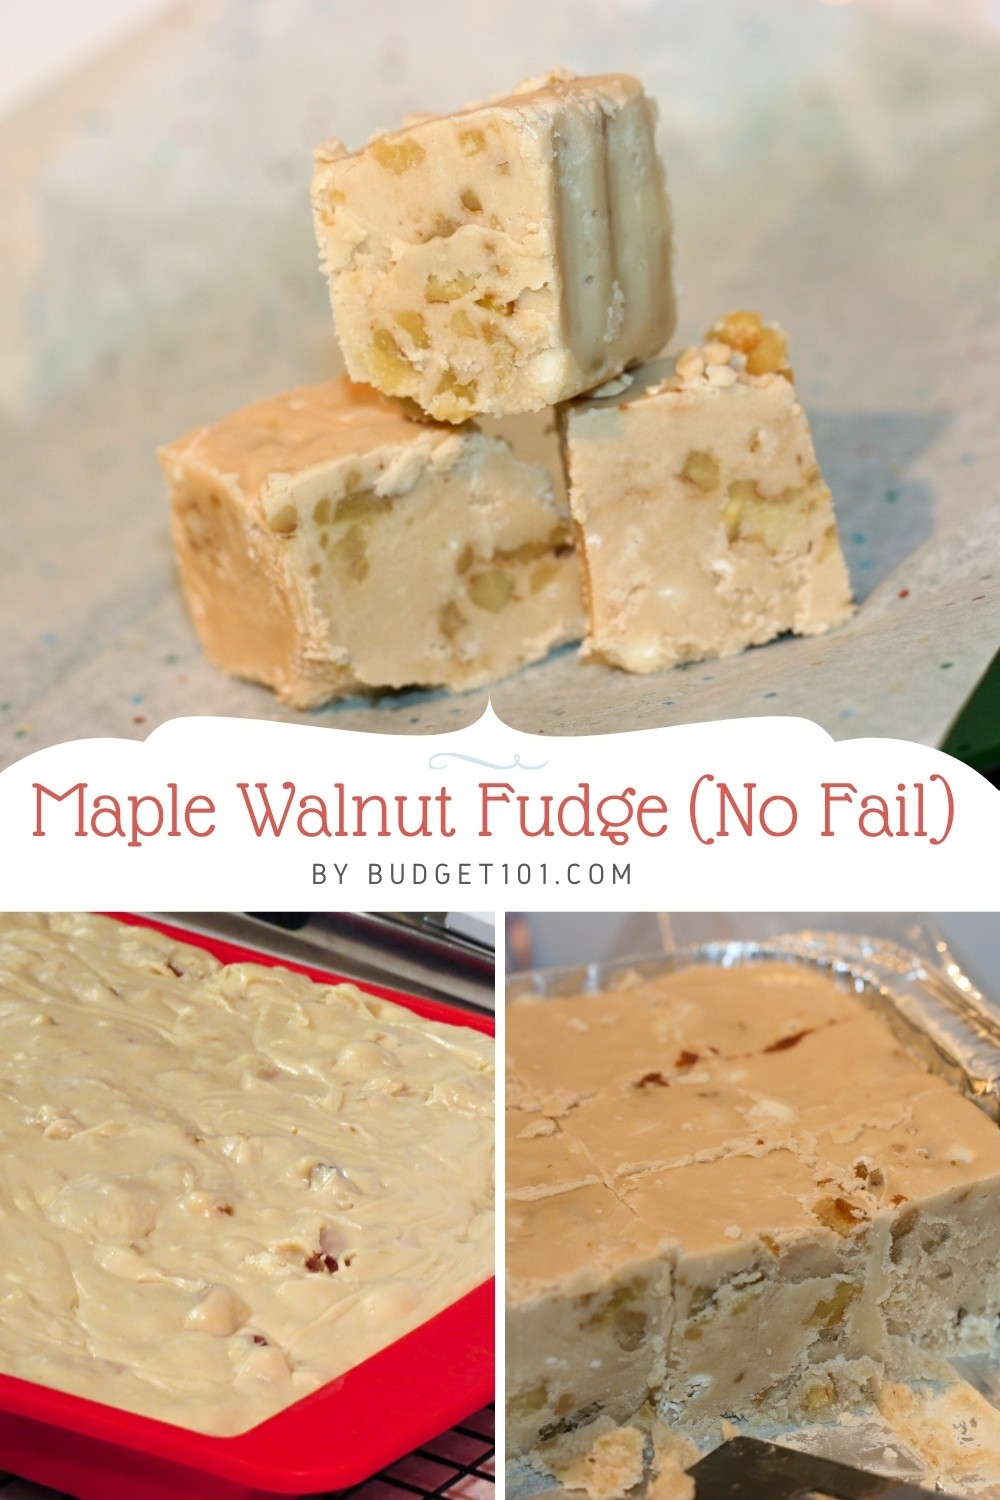 Delectable silky smooth, no fail, New England Maple Walnut fudge! Just 7 simple ingredients, this Maple fudge is by far the BEST Ever. For plain Maple Fudge candy, omit the nuts! #MapleWalnutFudge #MapleFudge #NewEnglandRecipes #Budget101 #MYO #CandyRecipes #ChristmasRecipes #ChristmasCandy